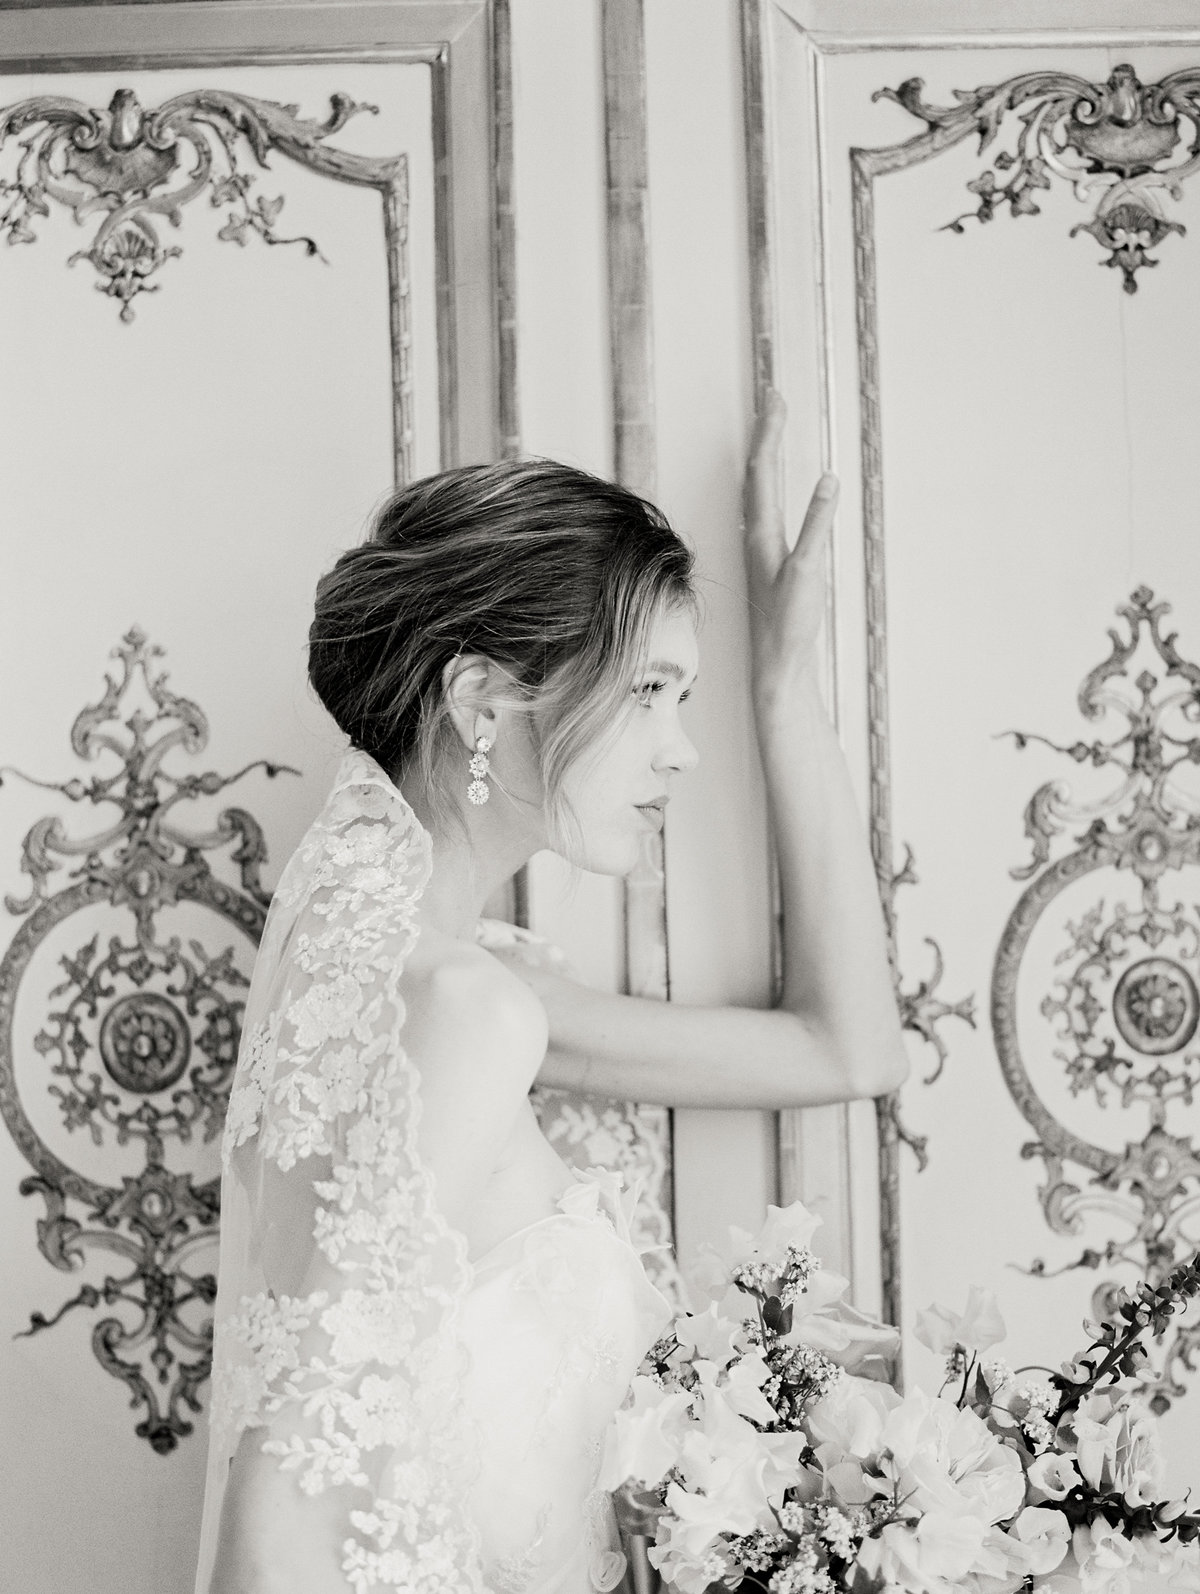 Bride-Parisian Wedding at Hotel D'Evreux